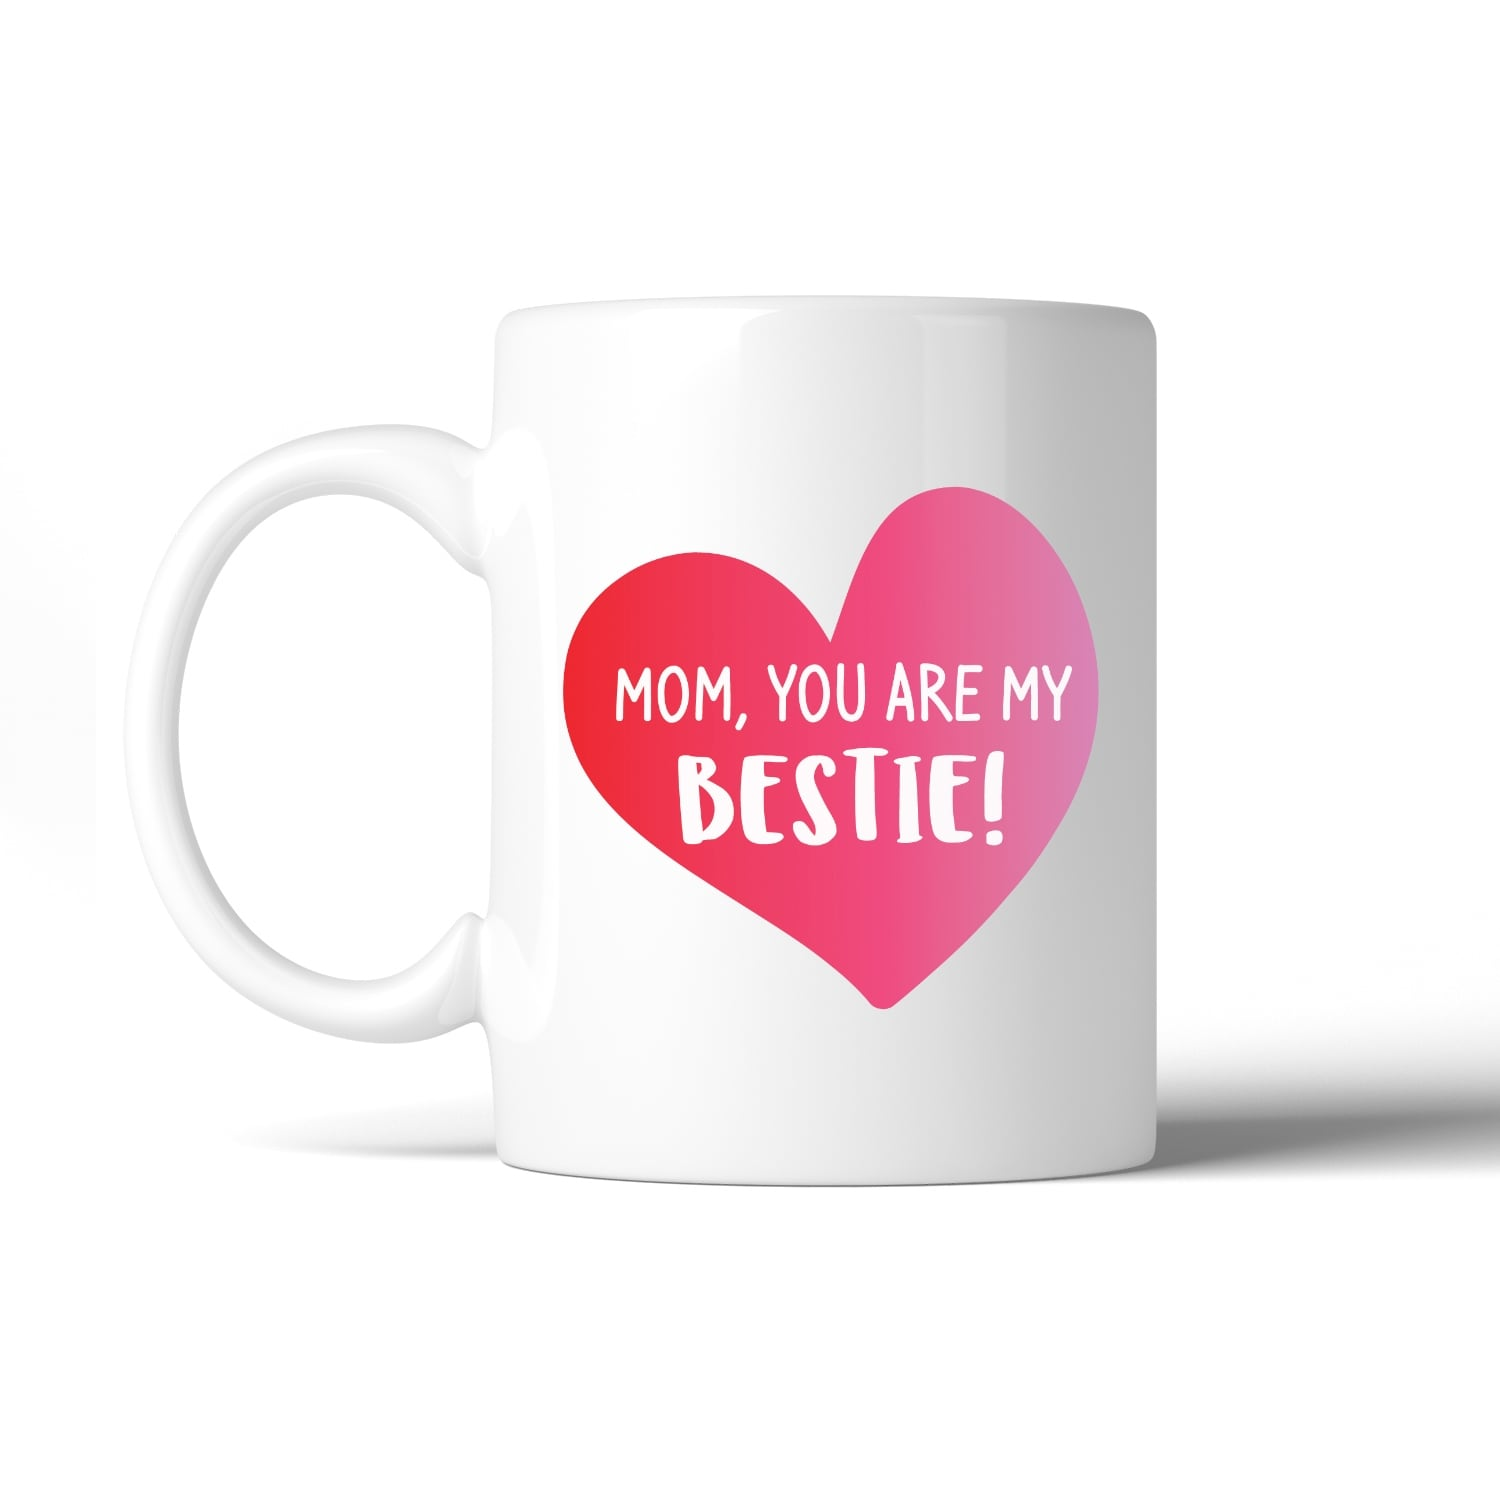 Mom You Are My Bestie Coffee Mug Mothers Day Gifts From Daughters Overstock 15618080